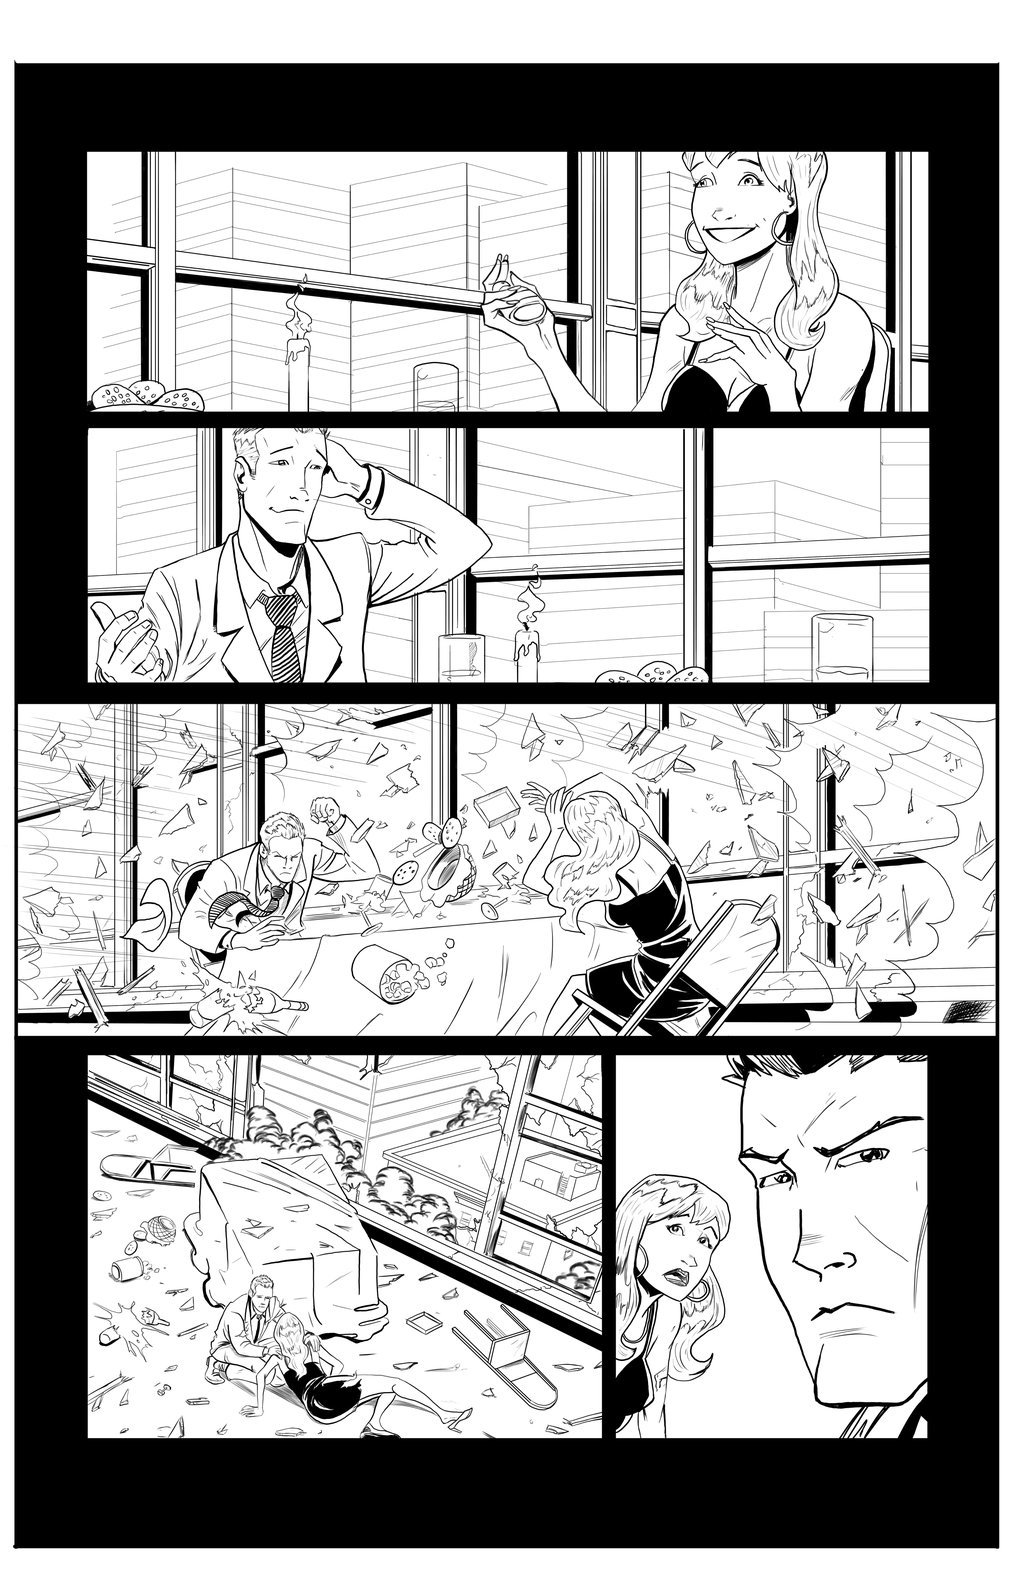 Matt james spider man sample page 2 by mattjamescomicarts d7c0utf